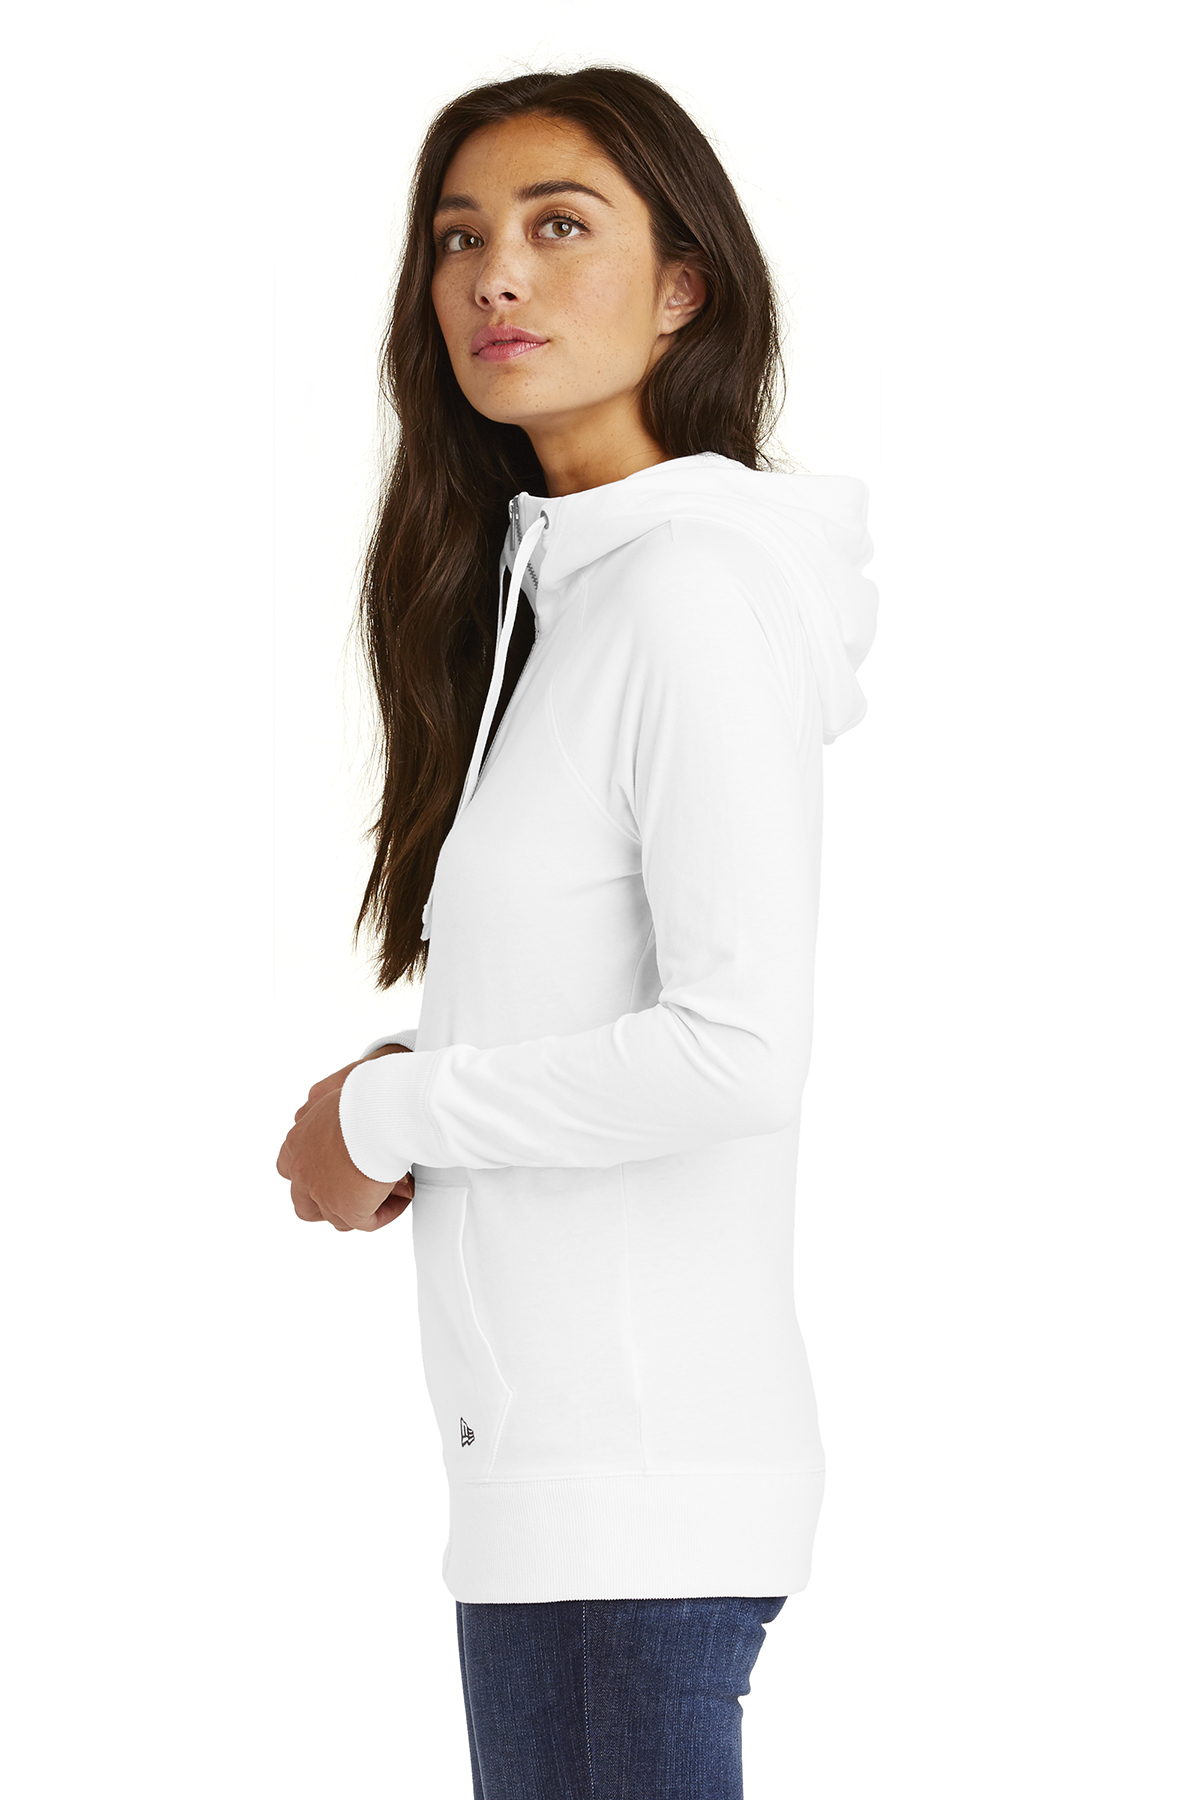 4aeb4075814 ... New Era® Ladies Sueded Cotton Blend Full-Zip Hoodie. A maximum of 8  logos have been uploaded. Please remove a logo from My Logos to continue